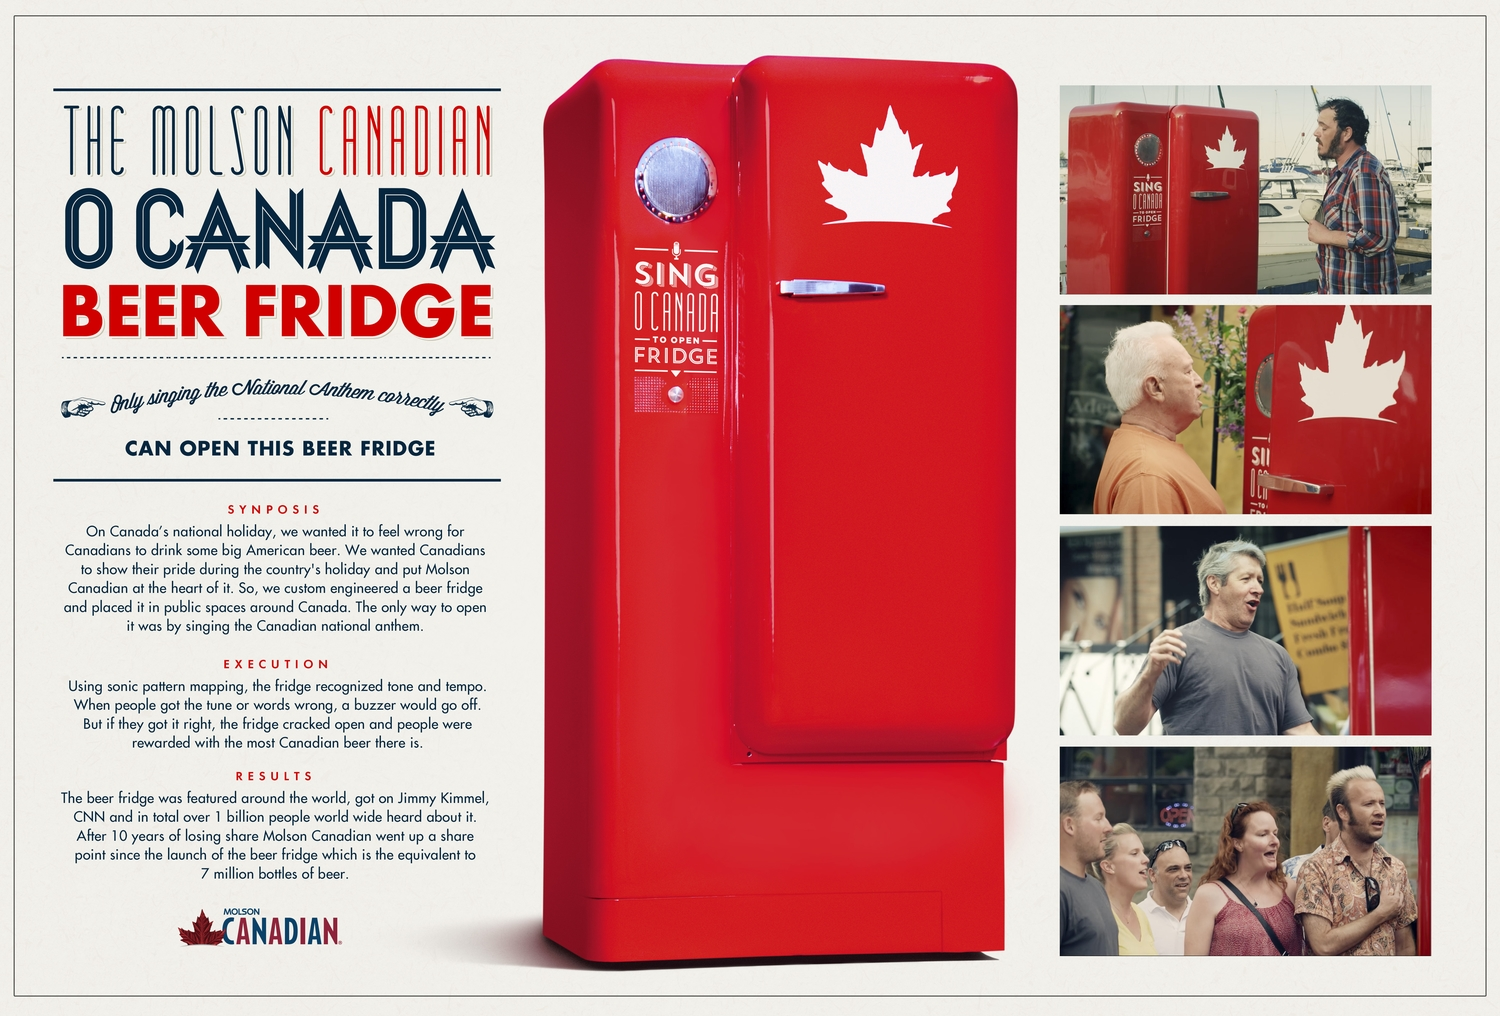 molson-canadian-molson-canadian-beer-the-beer-fridge-o-canada-media-promo-direct-marketing-377527-adeevee